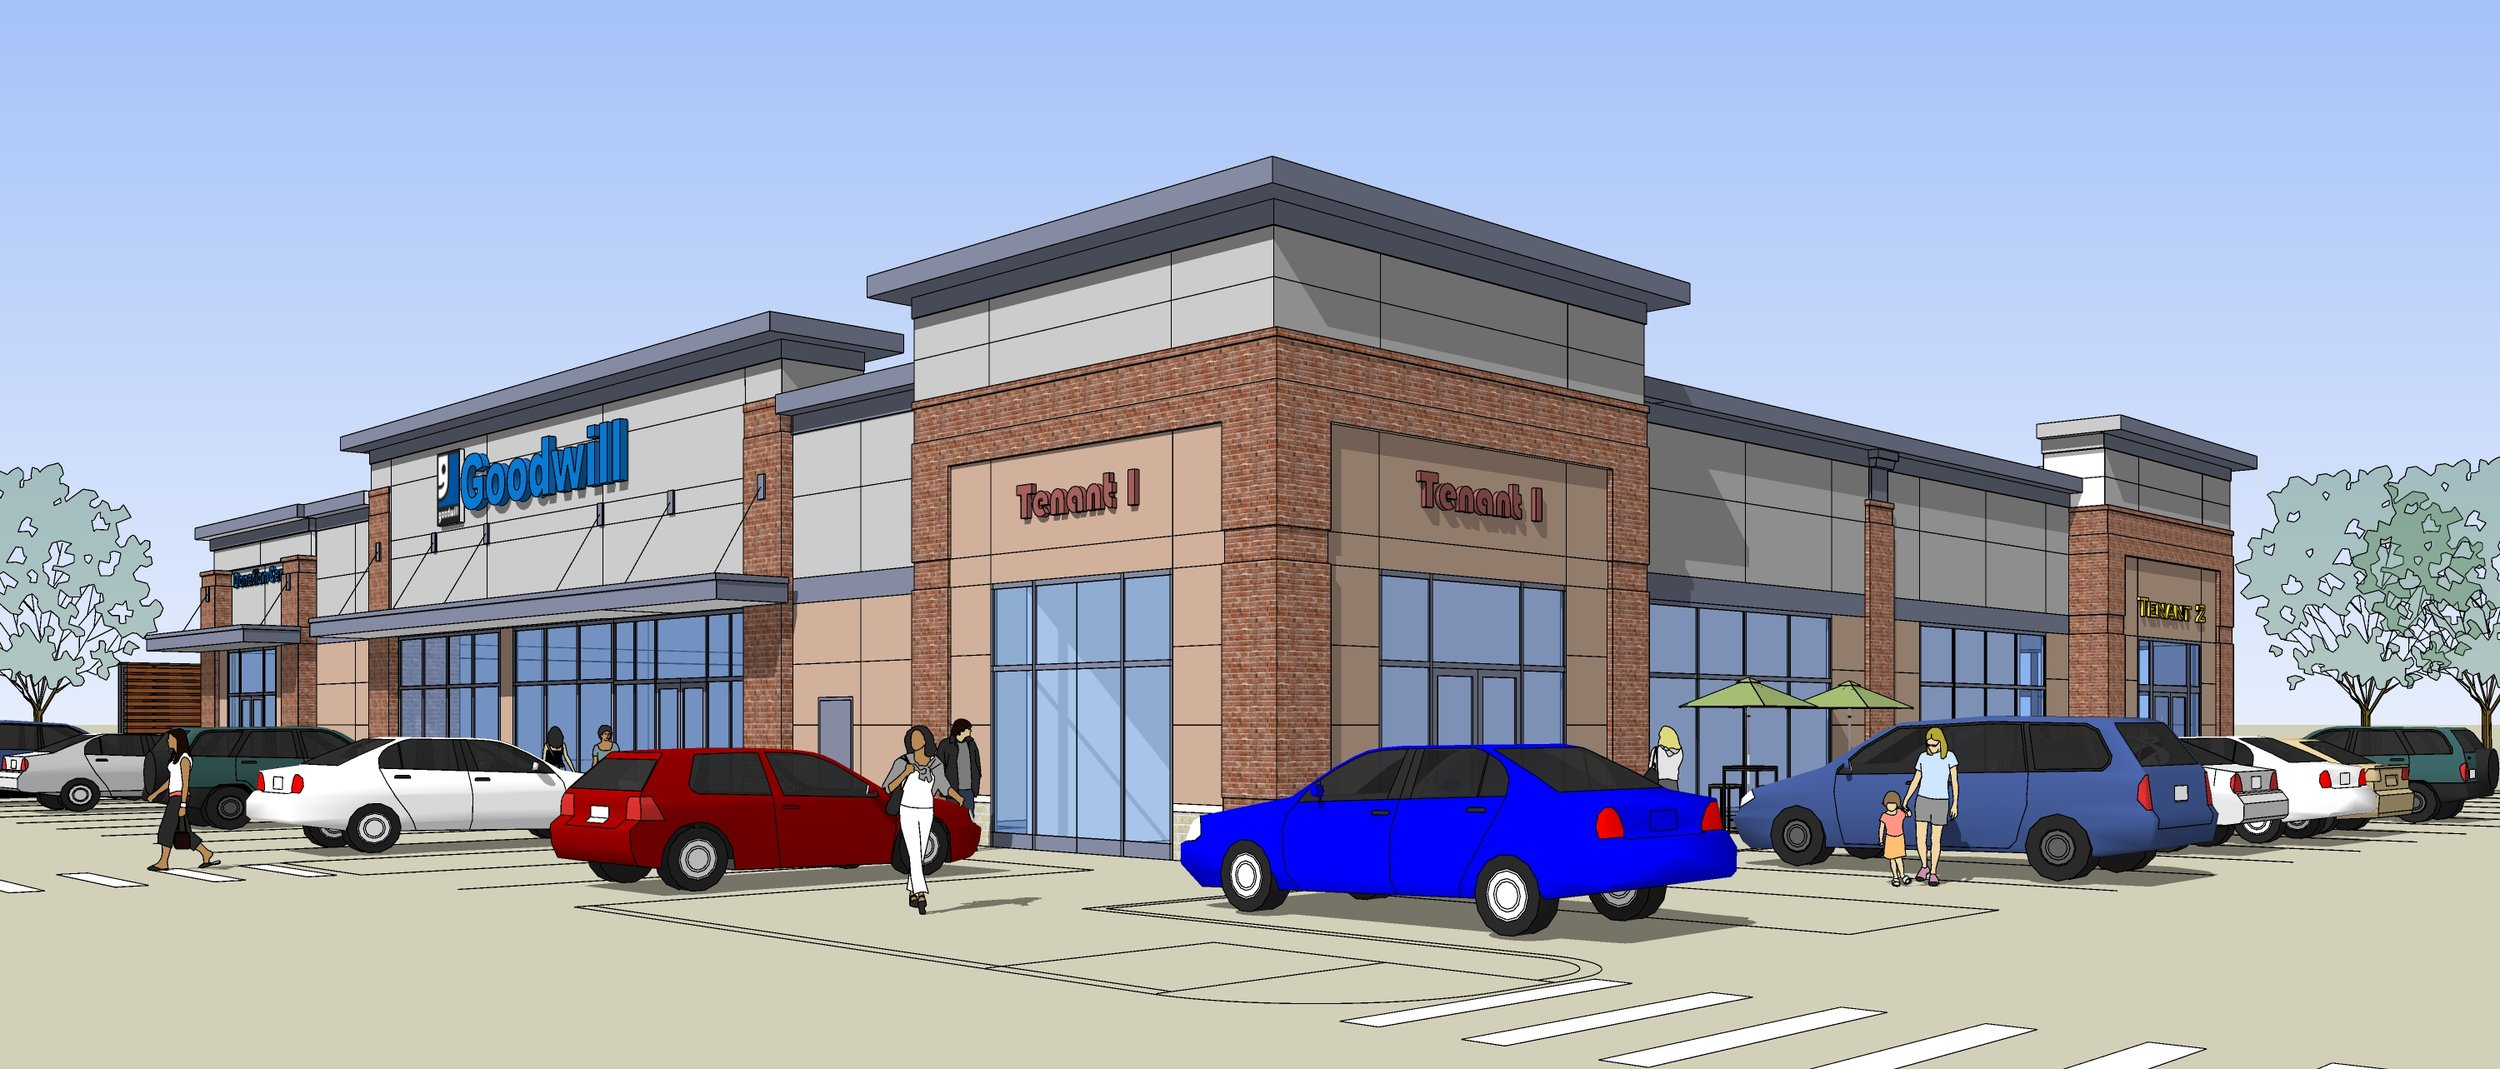 New Goodwill Industries Building - Supporting Community Needs